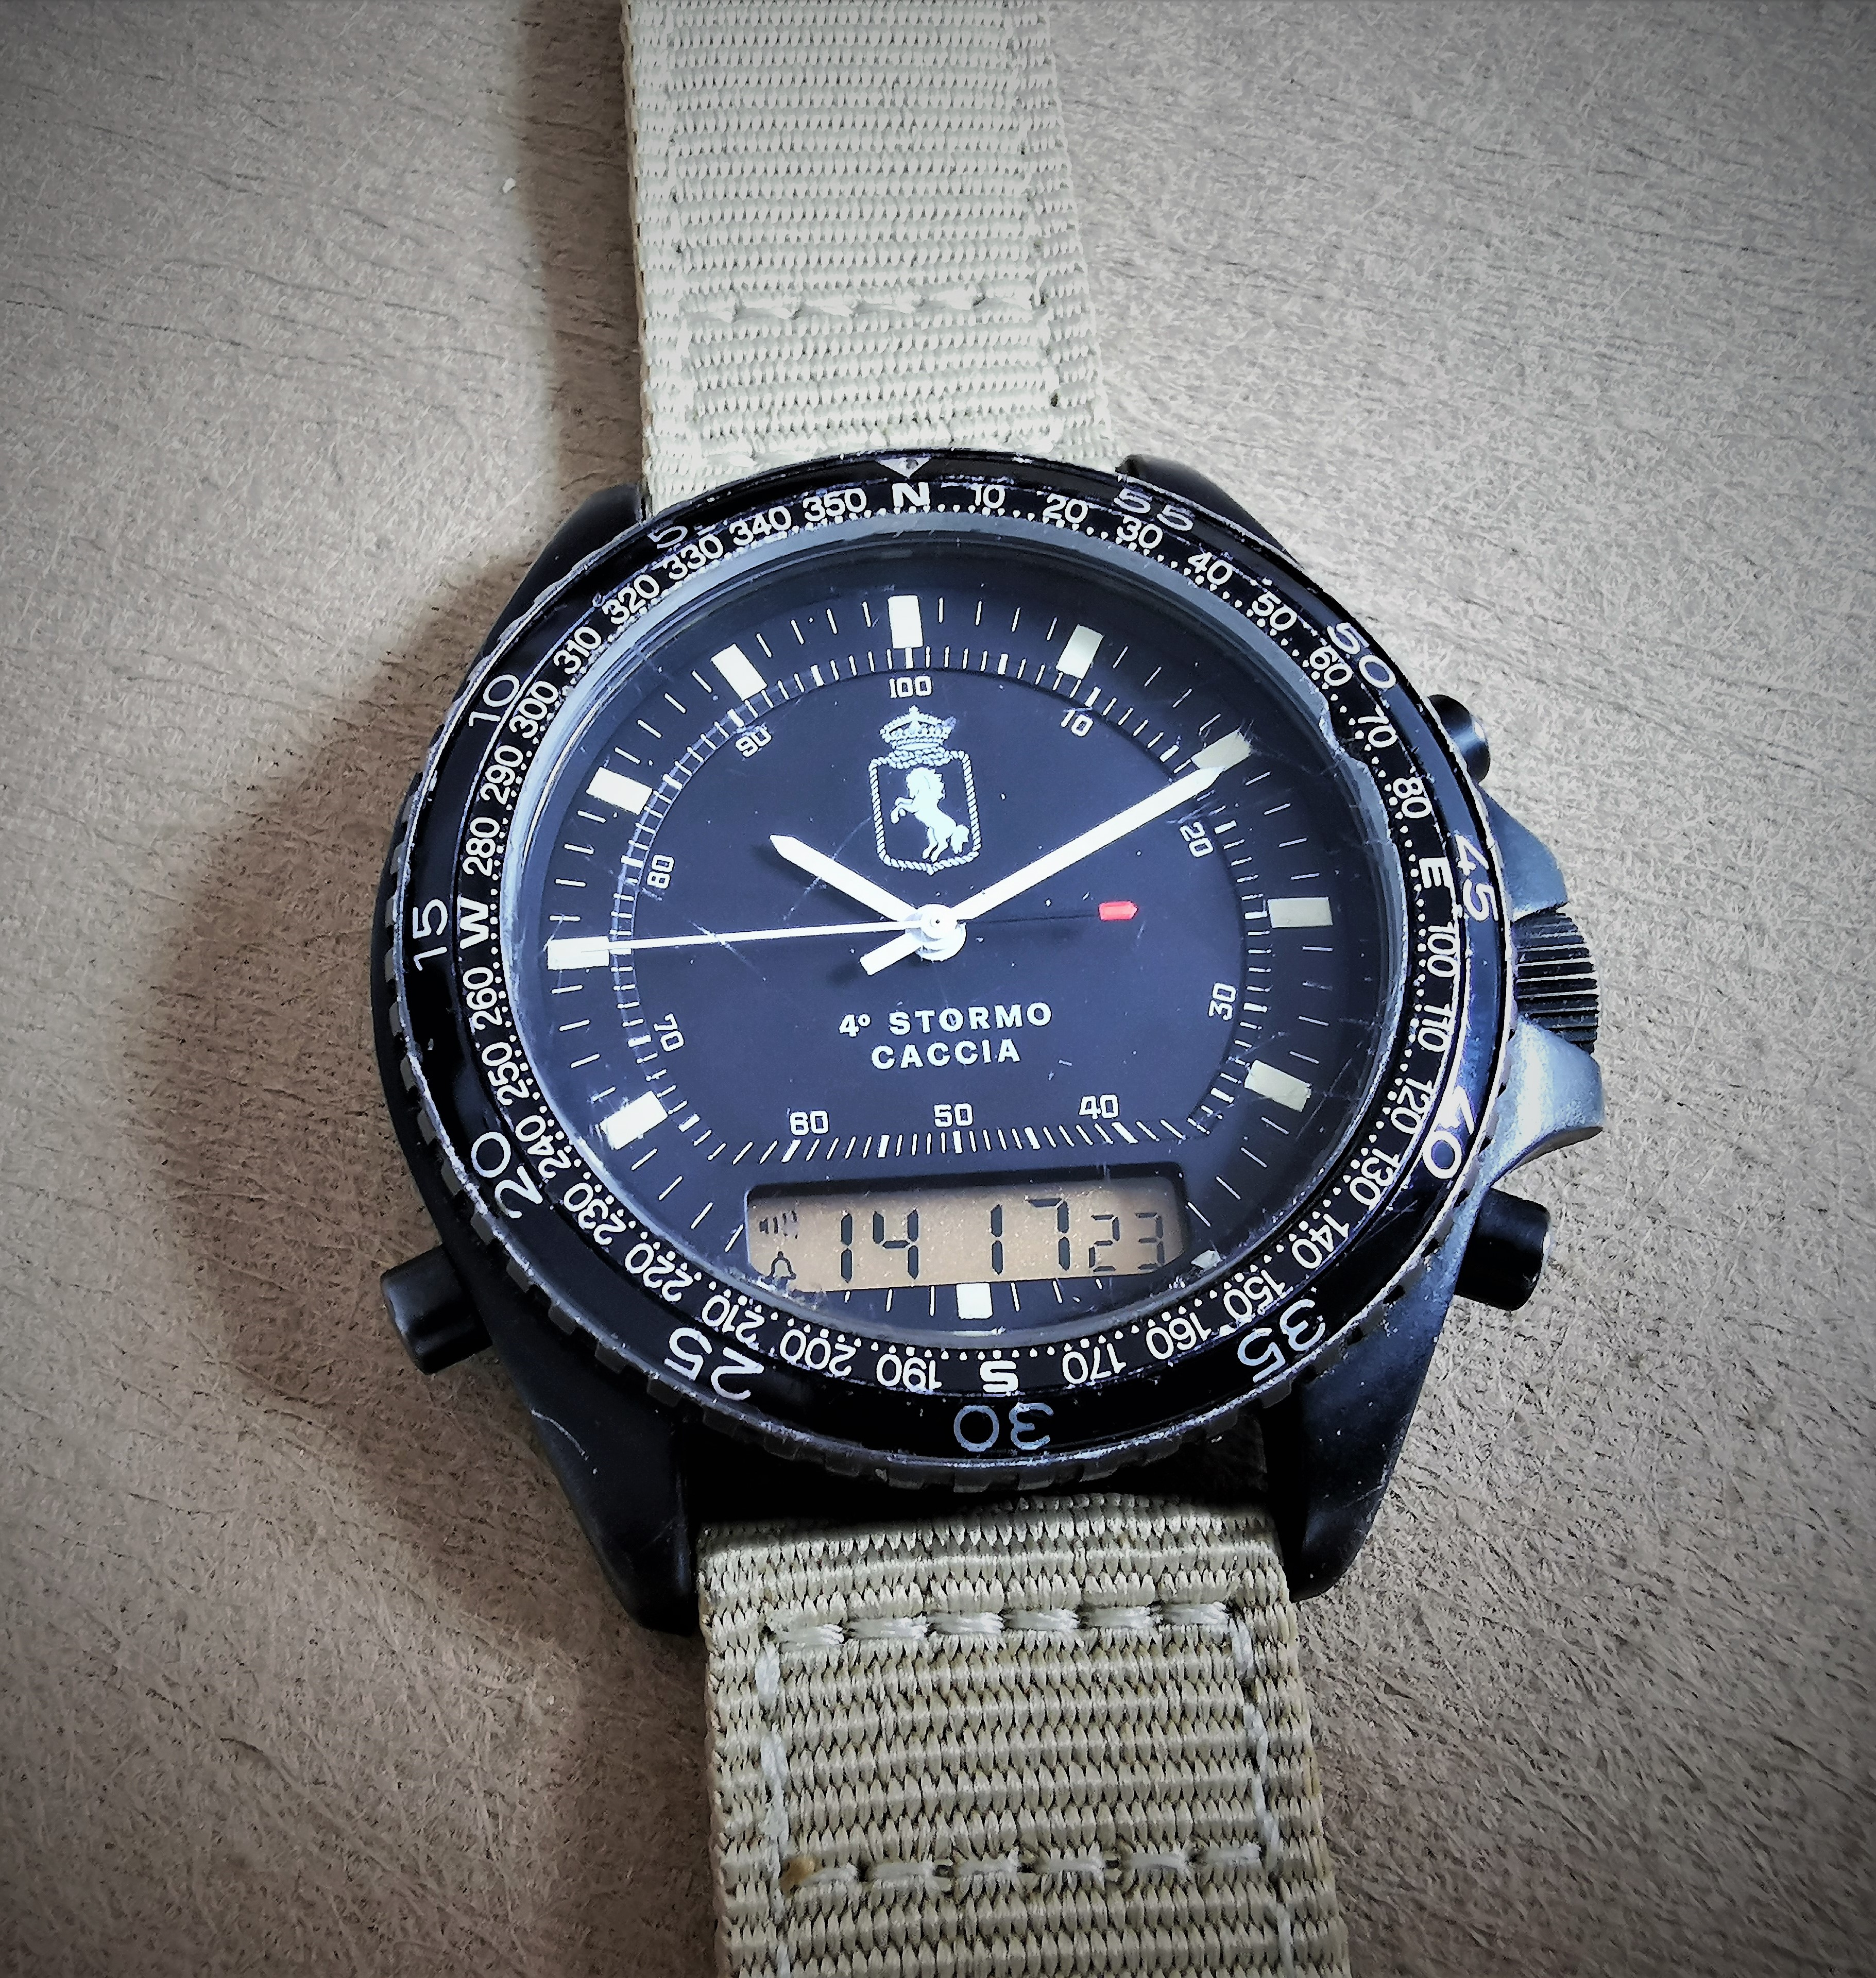 """Anonimo DPW (Diving Pace Watches) """"Chrono Flight"""" based on Breitling Navitimer Quartz 3100 (ref. 80191) 4th Fighter Wing   San Giorgio a Cremano"""